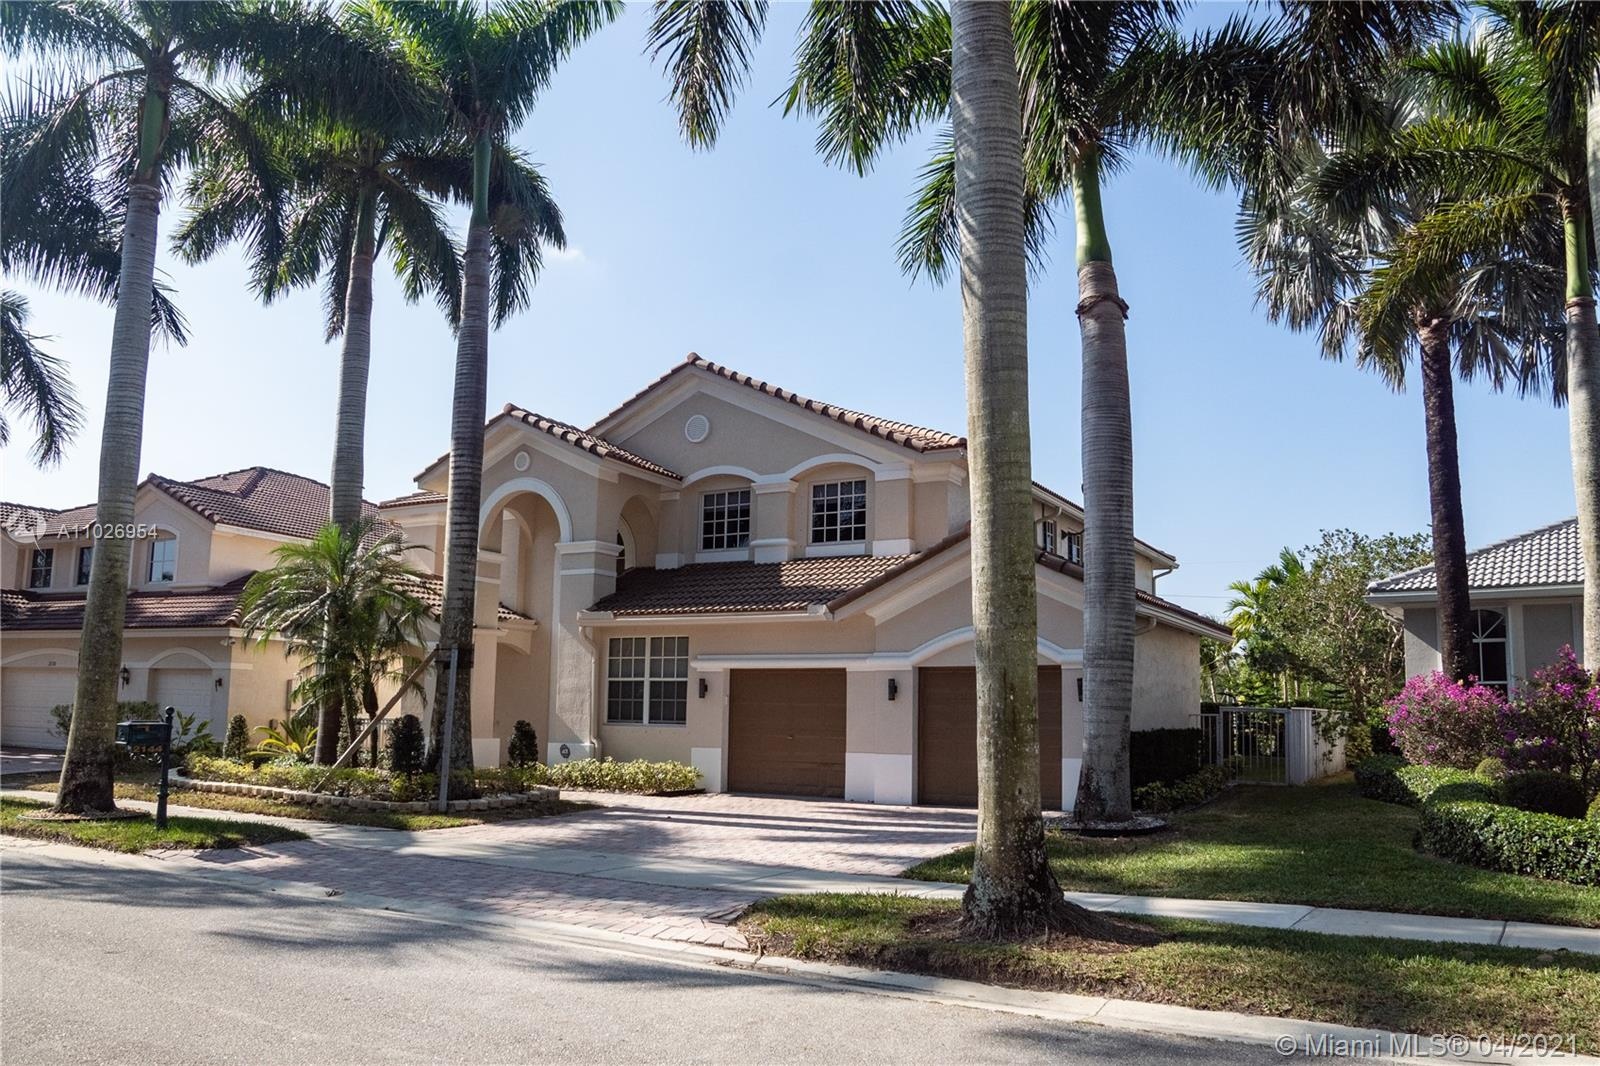 SPECTACULAR 6 BED, 5.1 BATH IN THE PRESTIGIOUS COMMUNITY OF WESTON HILLS COUNTRY CLUB- HUNTERS POINT II. MARBLE AND WOOD FLOORS, WATER FRONT WITH GORGEOUS POOL AND SPA, STUNNING LAKE VIEW!!.  CUSTOM REMODELED KITCHEN W/GRANITE COUNTER TOPS AND STAINLESS STEEL APPLIANCES, CROWN MOLDINGS THROUGHOUT THE HOUSE, SURROUND SYSTEM, AND LOTS OF UPGRADES. MOVE IN CONDITION!!!